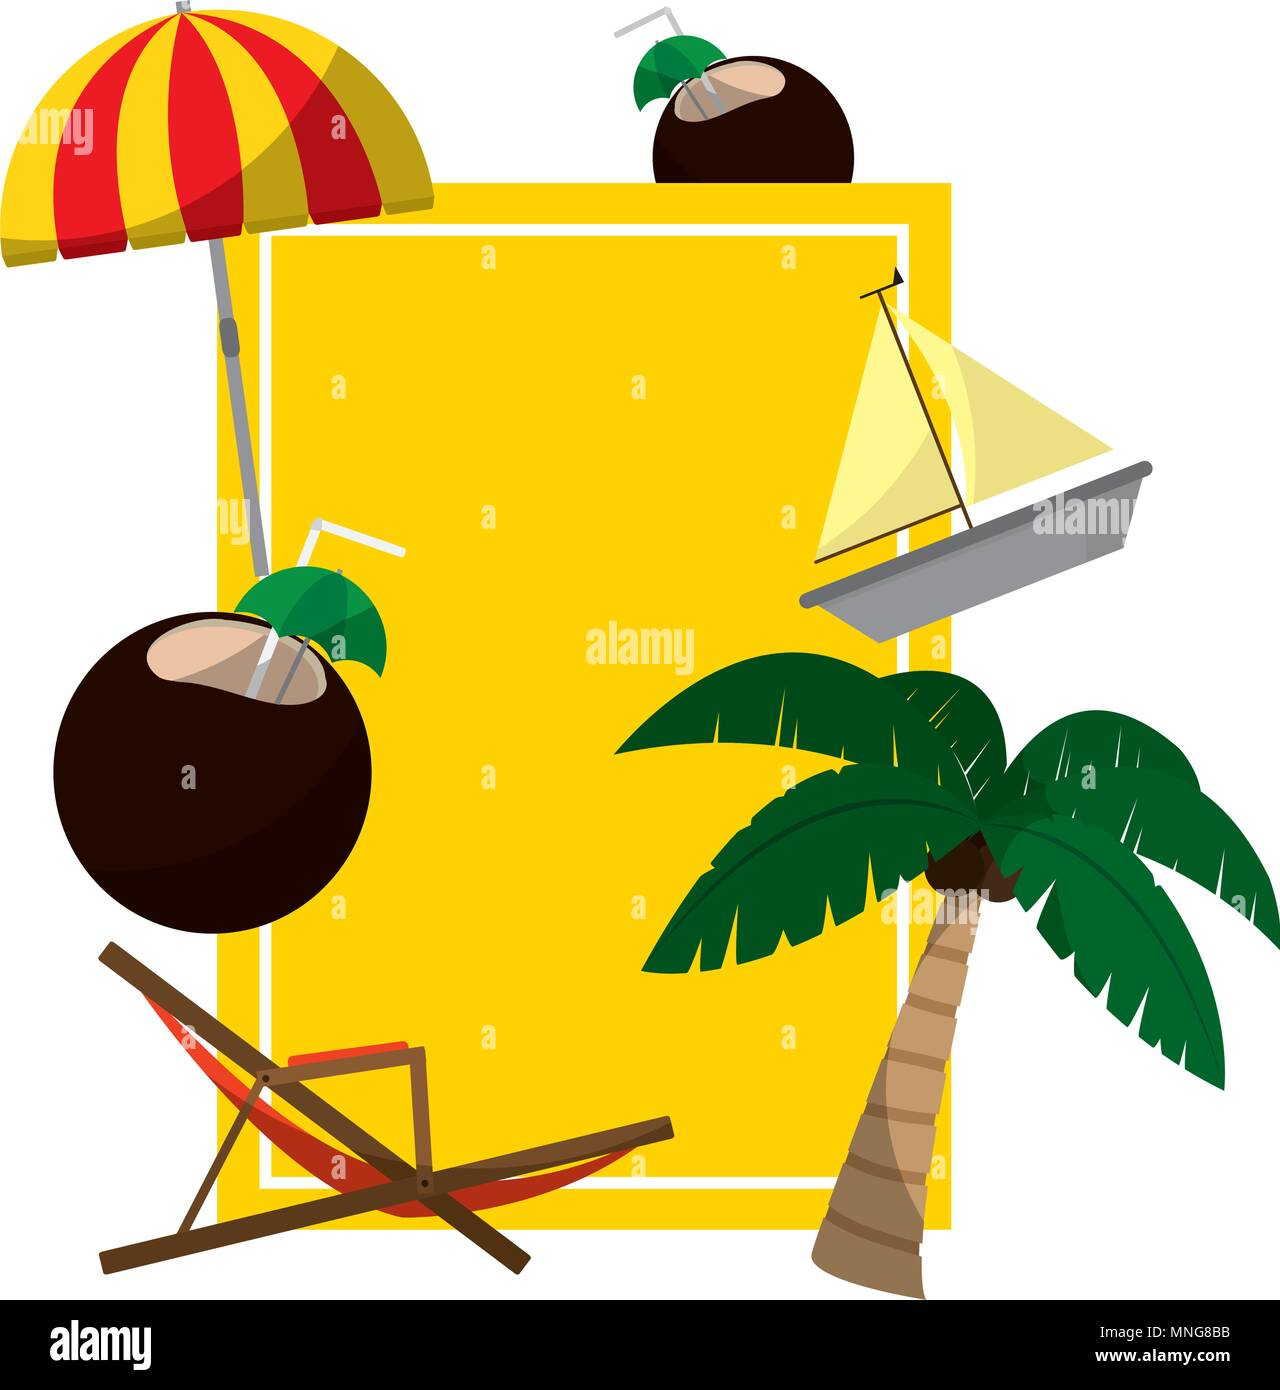 emblem with island things activities style - Stock Image